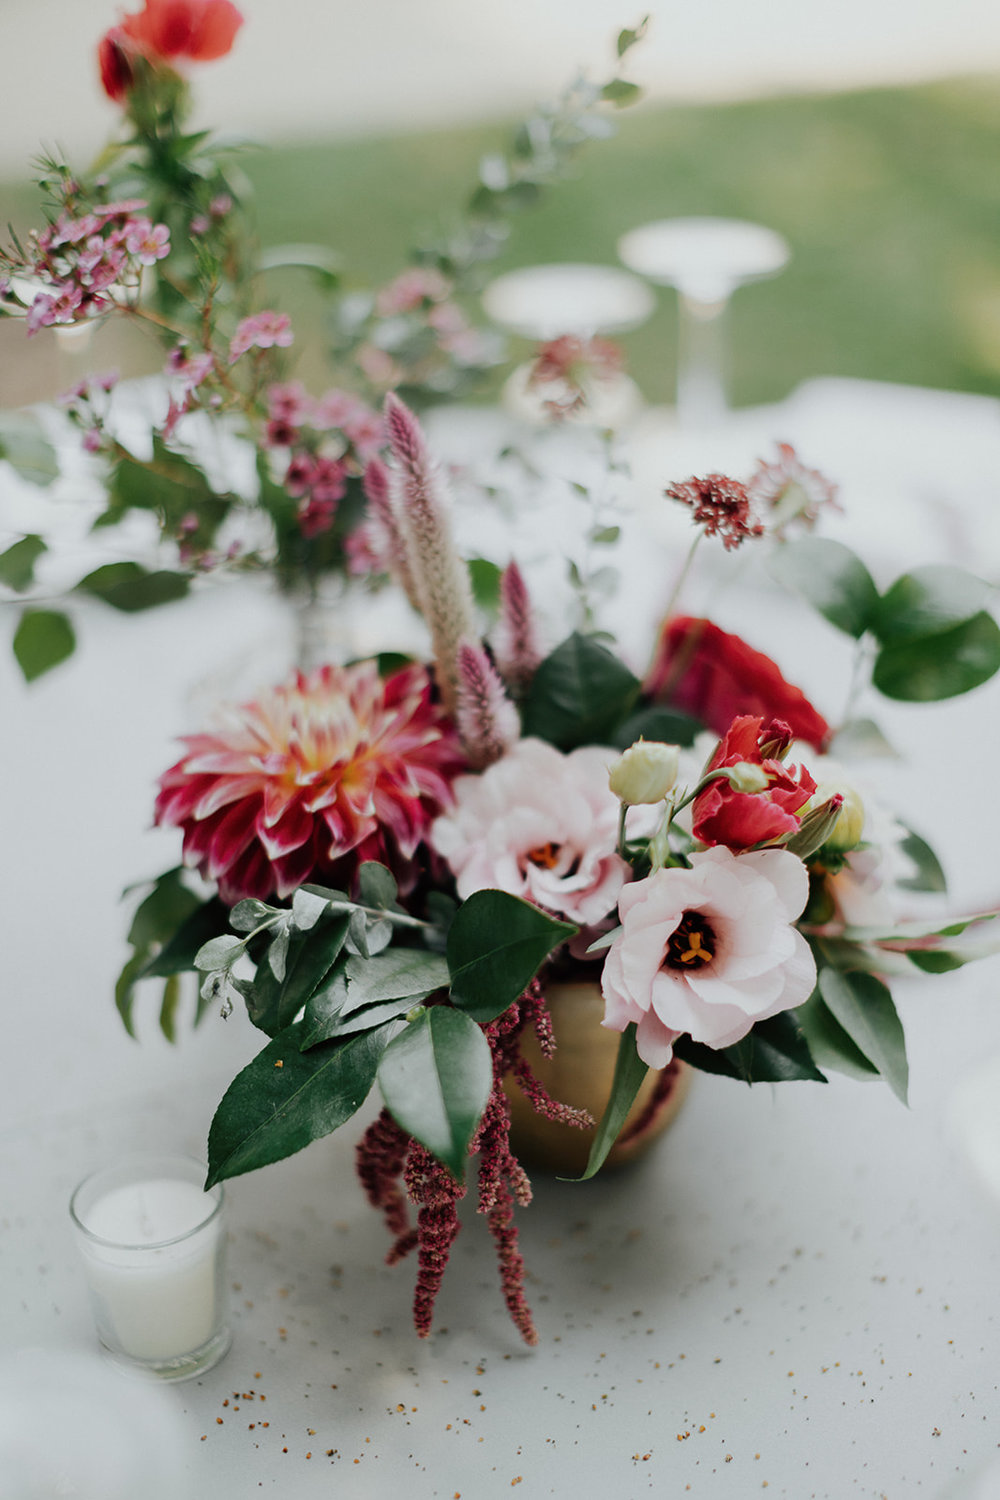 Hot pink, blush, and coral centerpieces in gold vases. Healdsburg wedding flowers by Venn Floral at Ru's Farm photographed by Logan Cole.